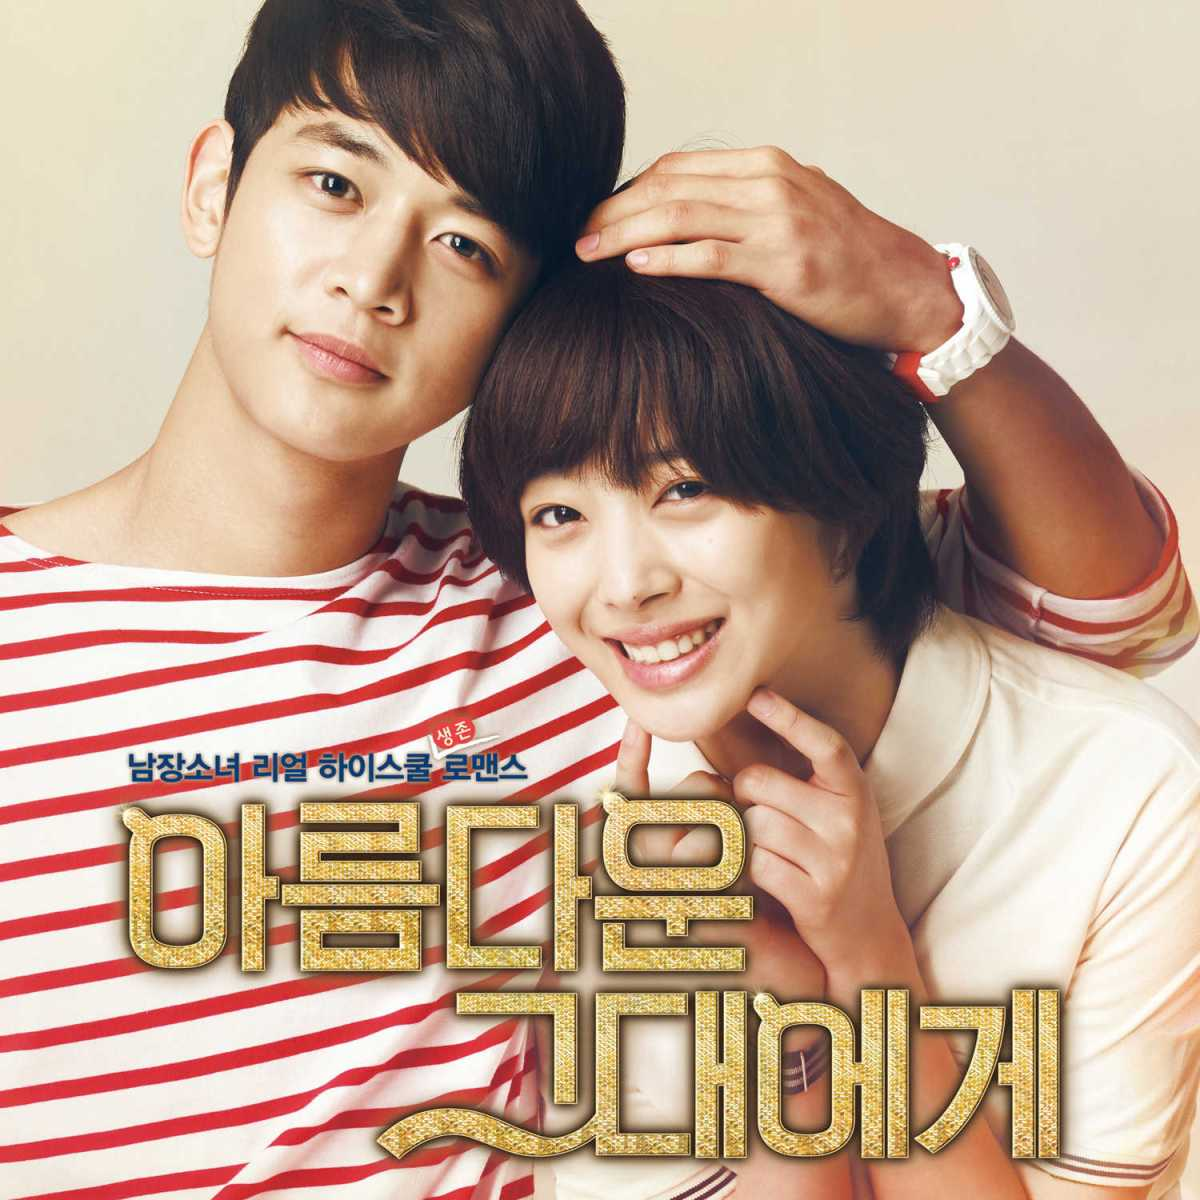 Onew (SHINee) - In Your Eyes (To the Beautiful You OST)